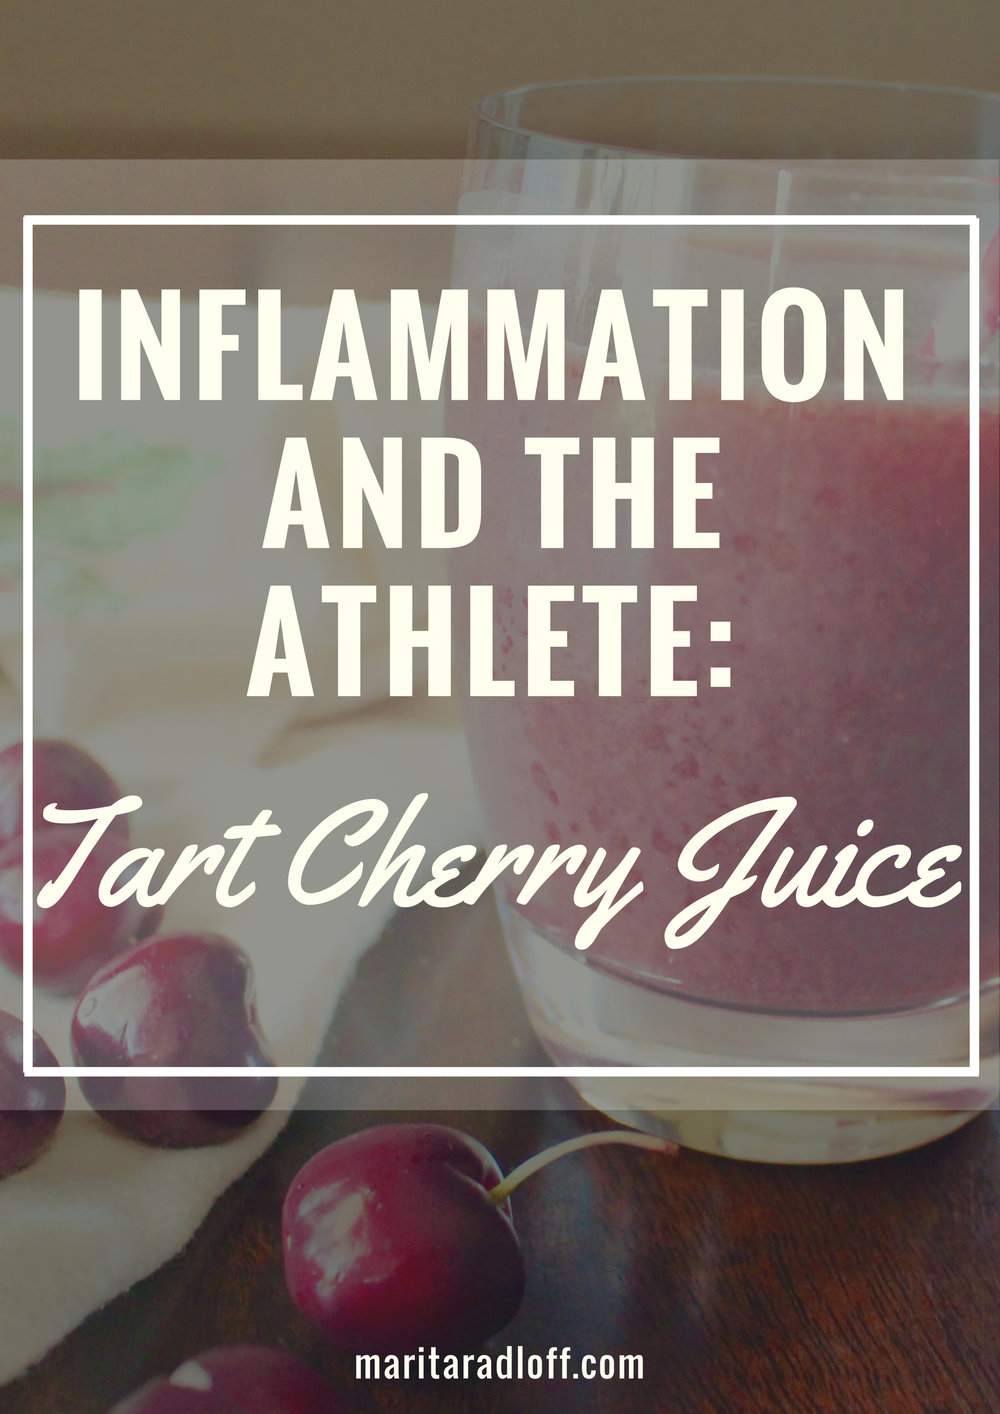 tart cherry juice for athletes.jpg